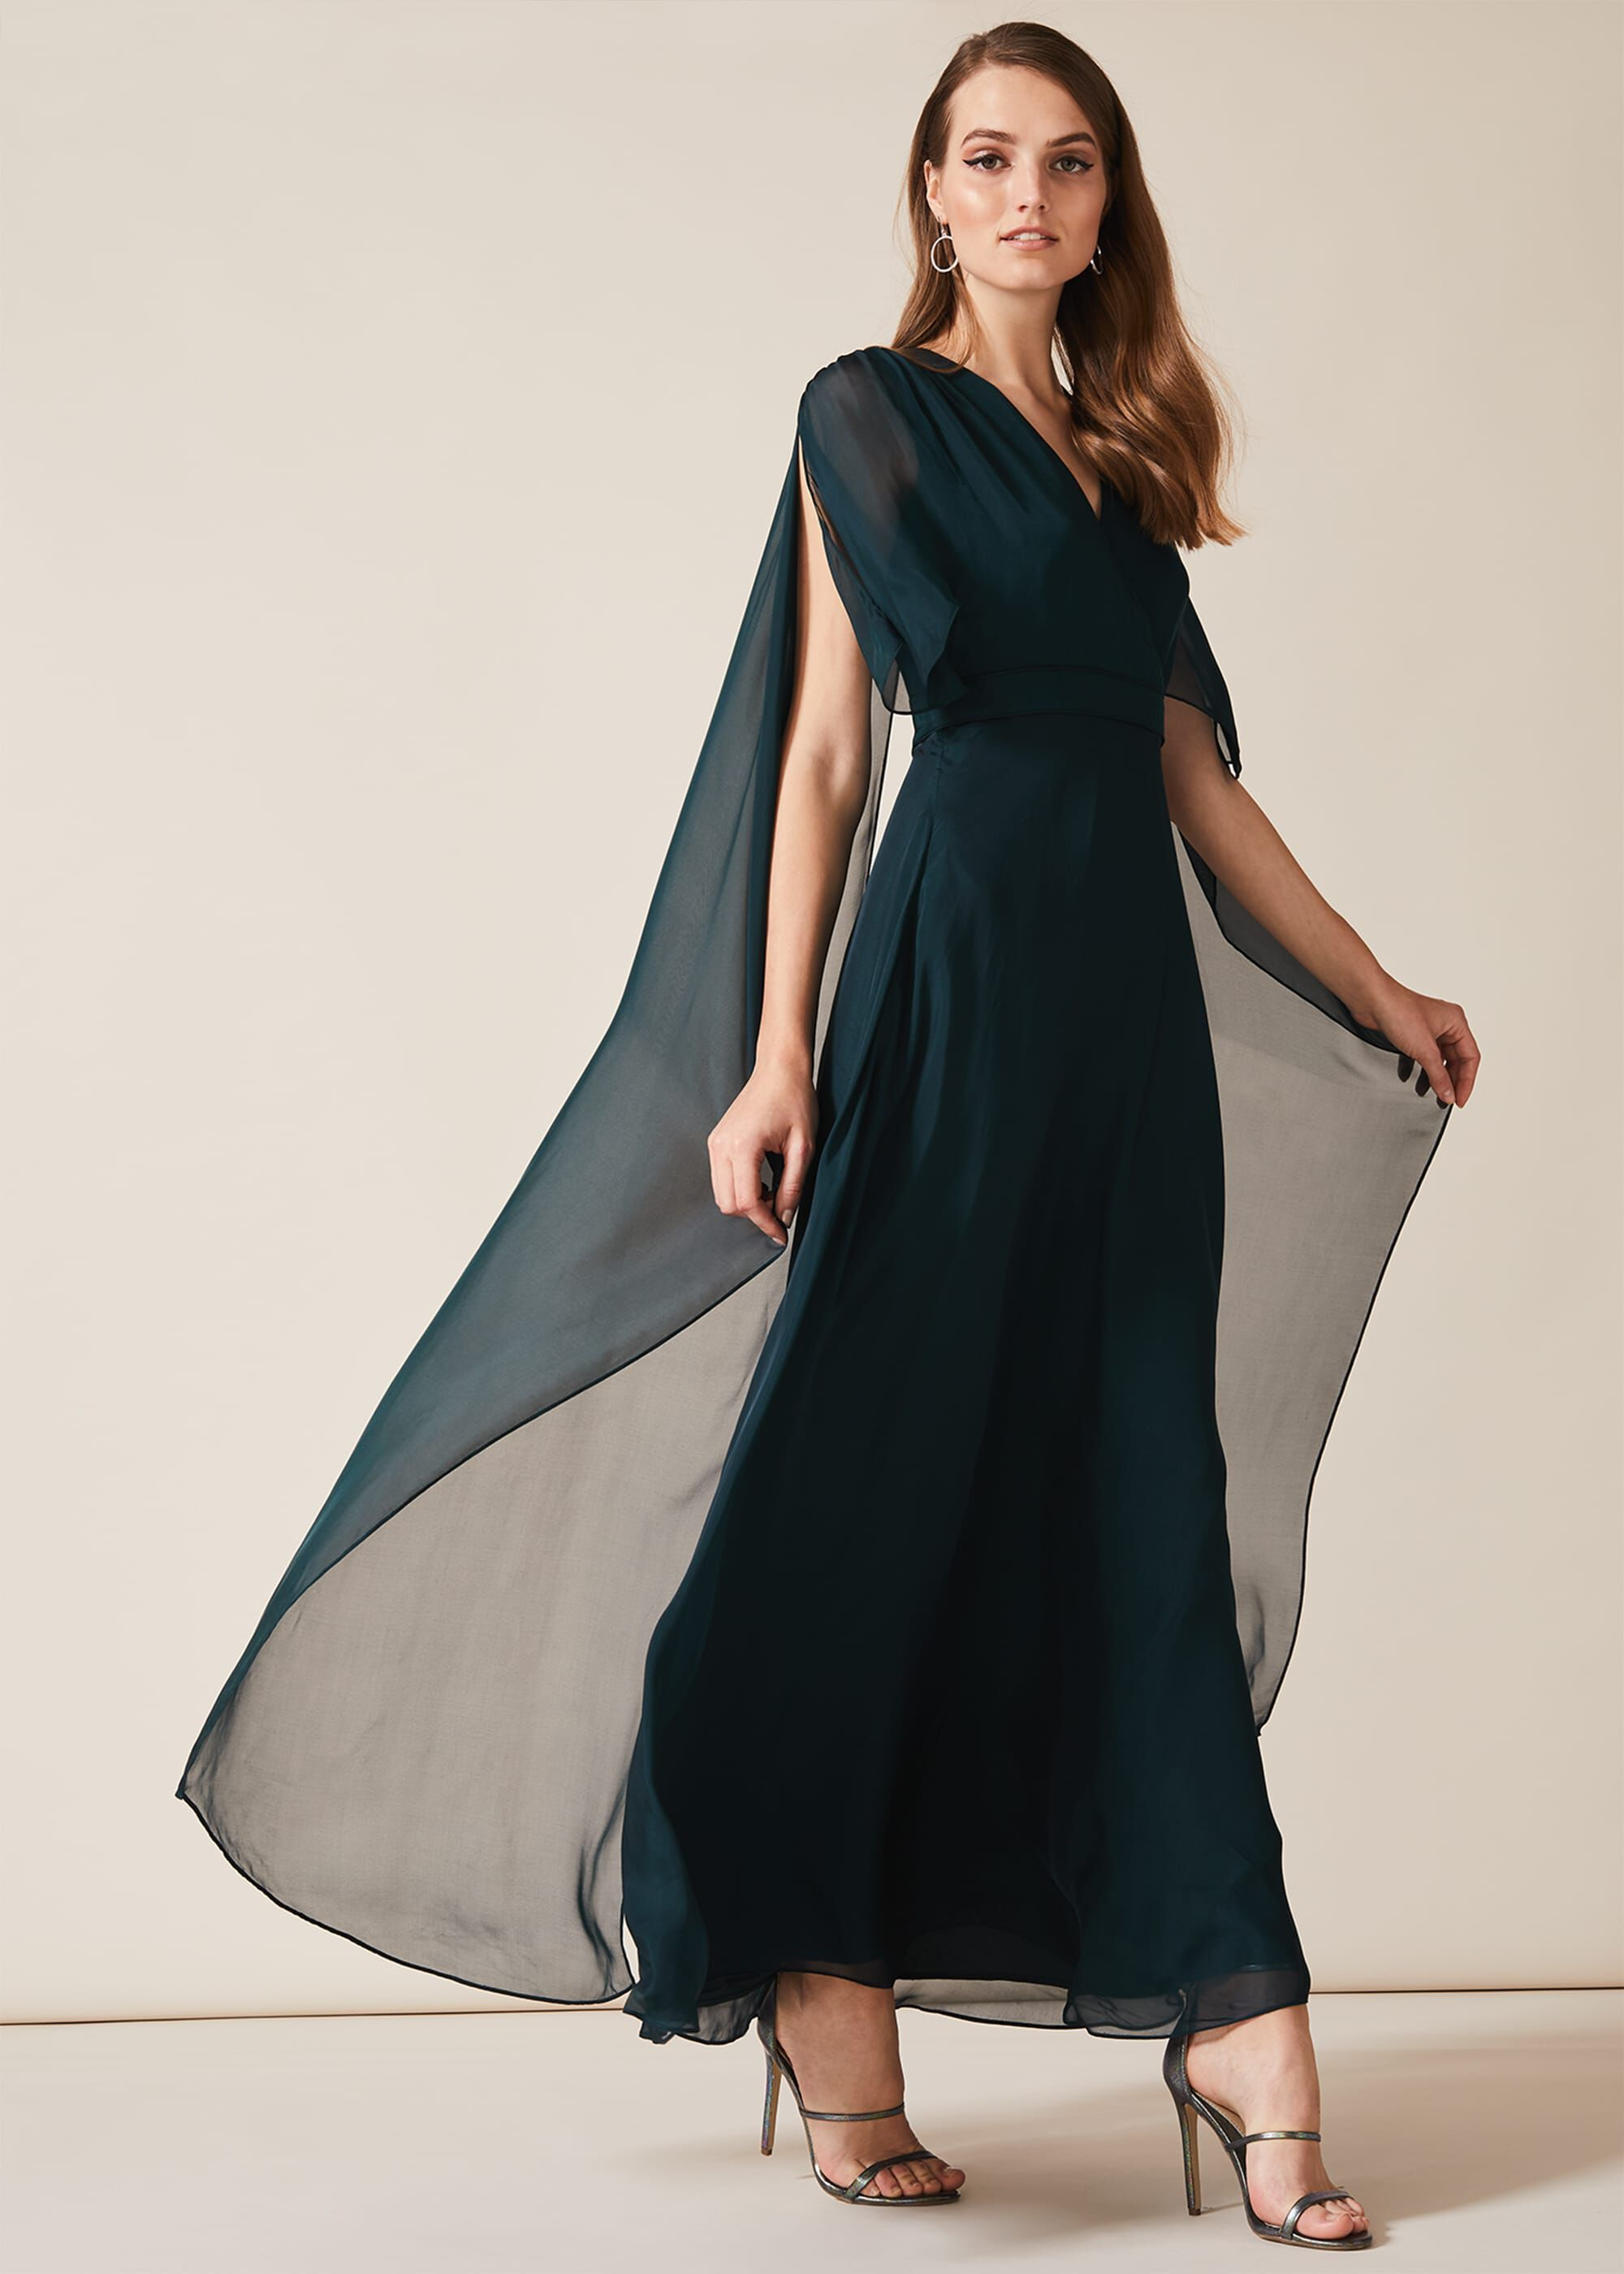 Phase Eight Arwen Silk Drape Dress, Blue, Maxi, Occasion Dress